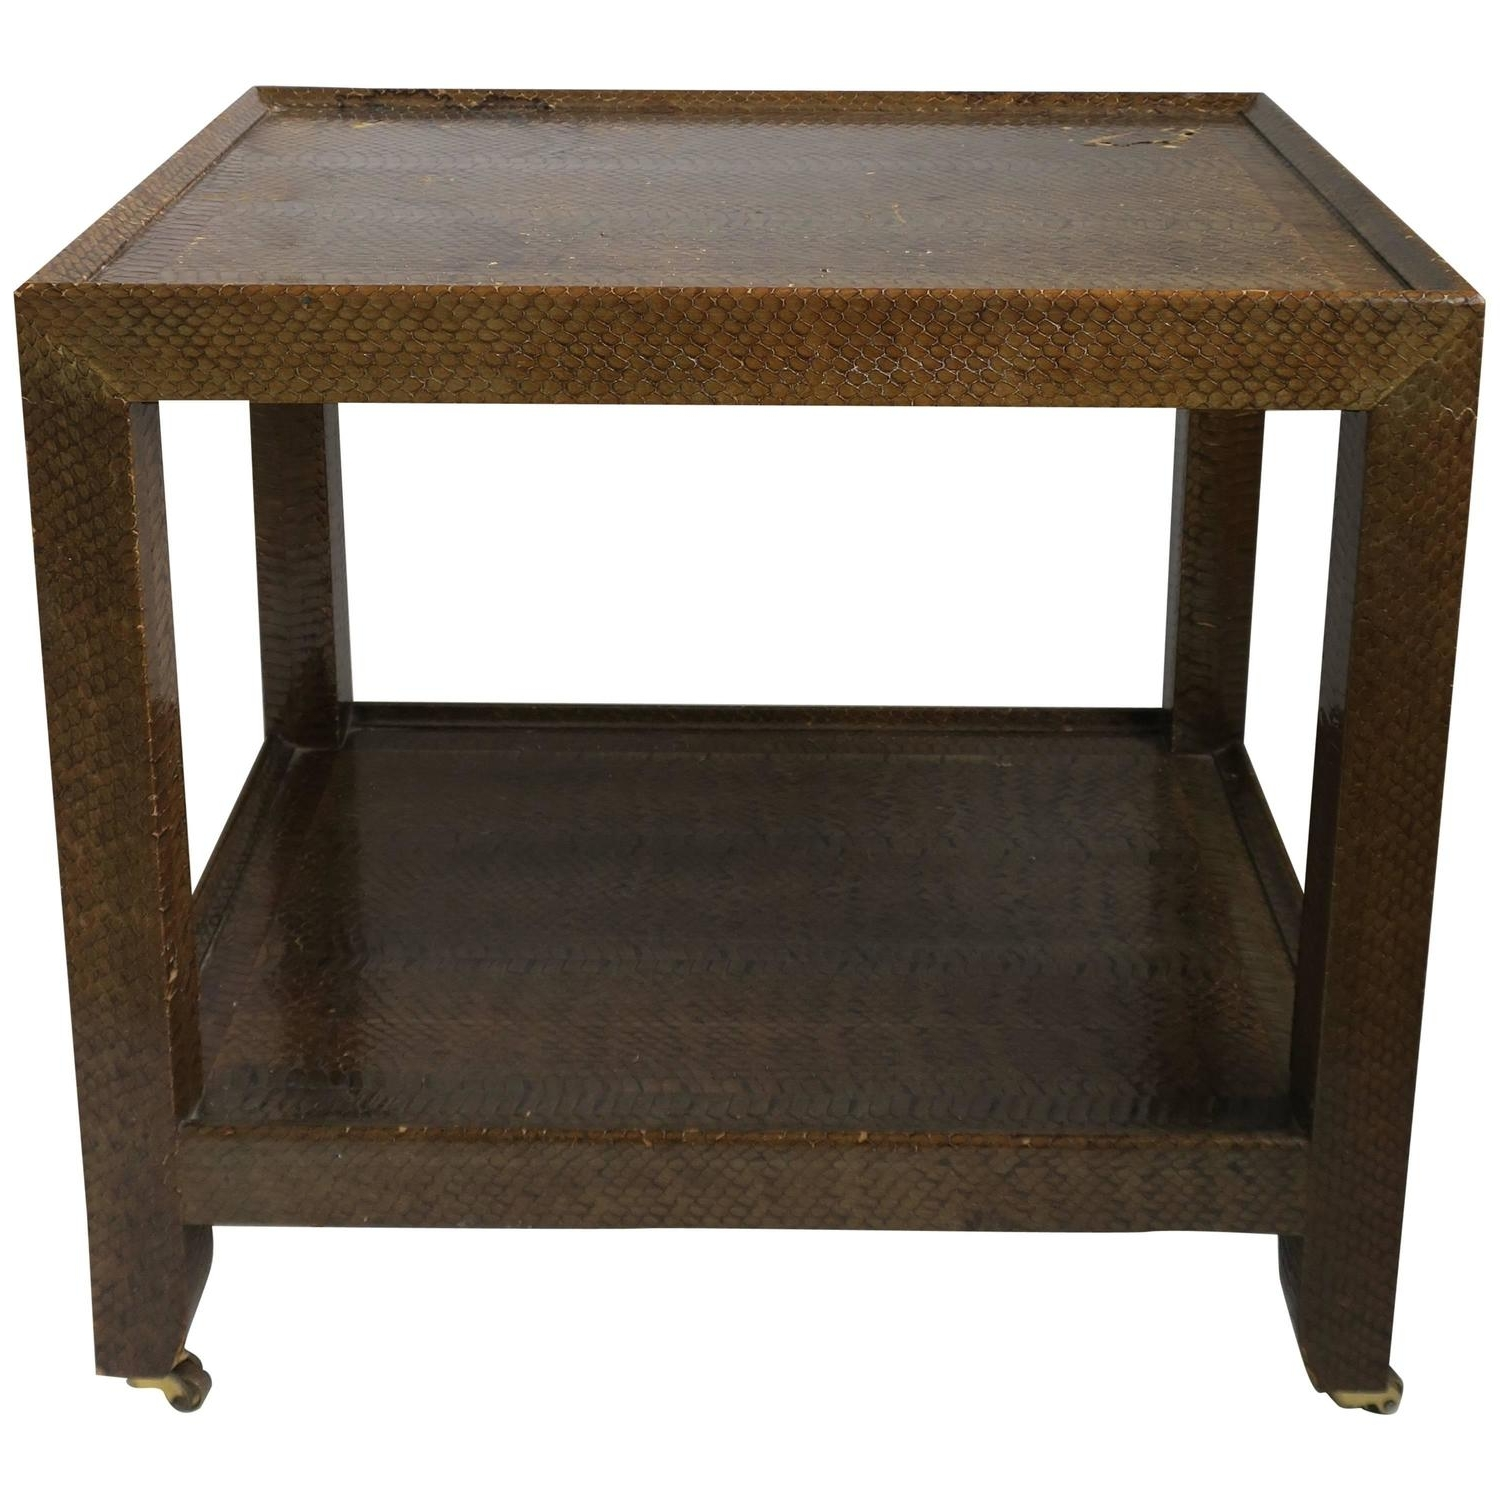 Post Modern Side Tables – 148 For Sale At 1stdibs Inside Well Liked Khacha Coffee Tables (View 3 of 20)